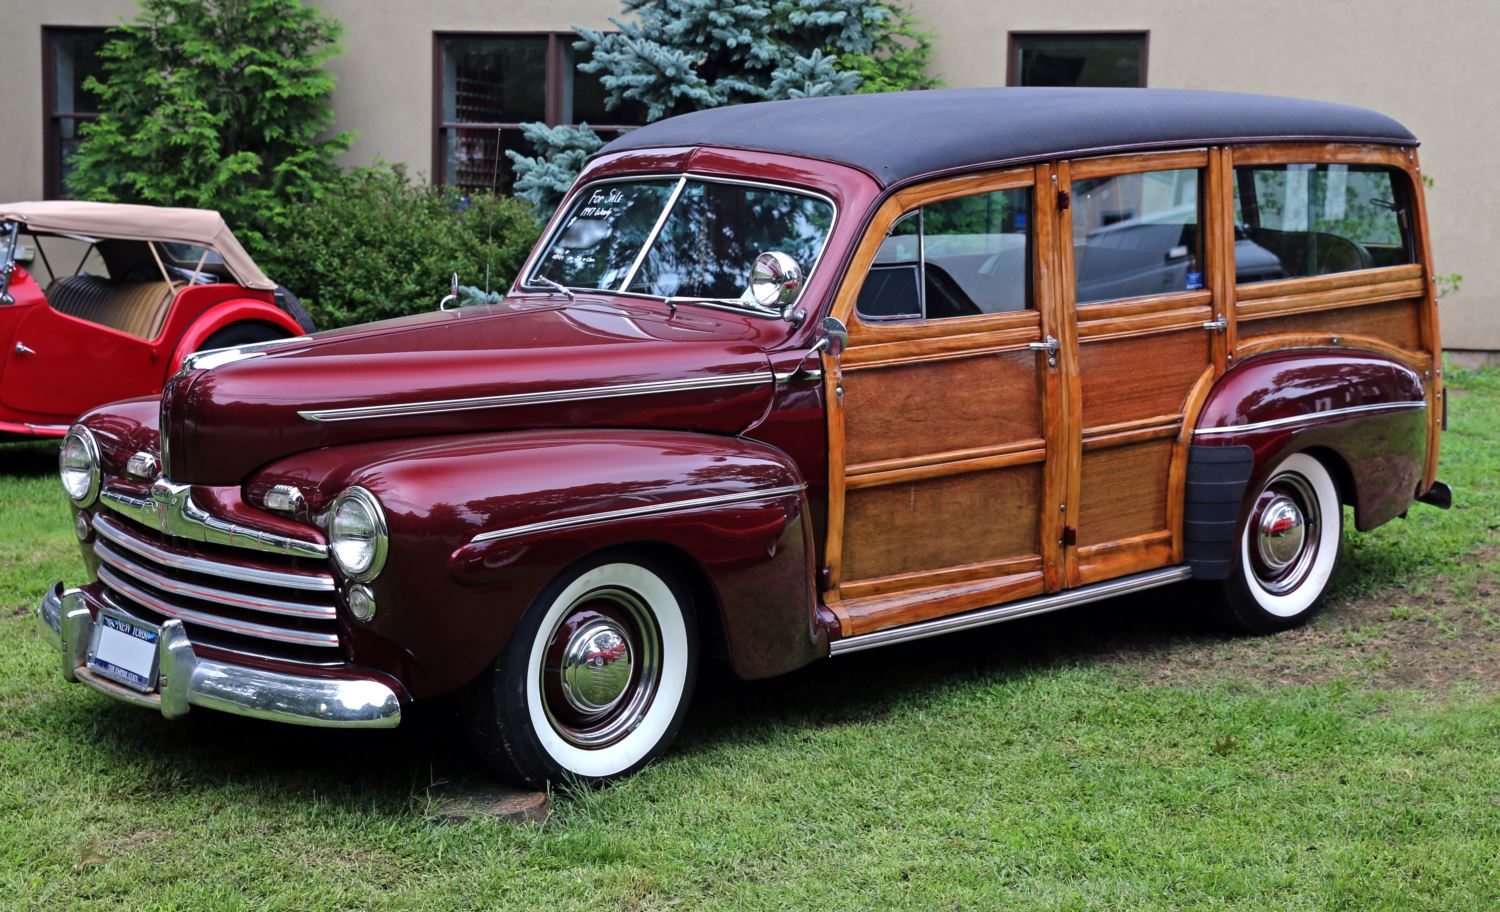 ОРИГІНАЛ: Ford Super Deluxe Woody, 1947 рік